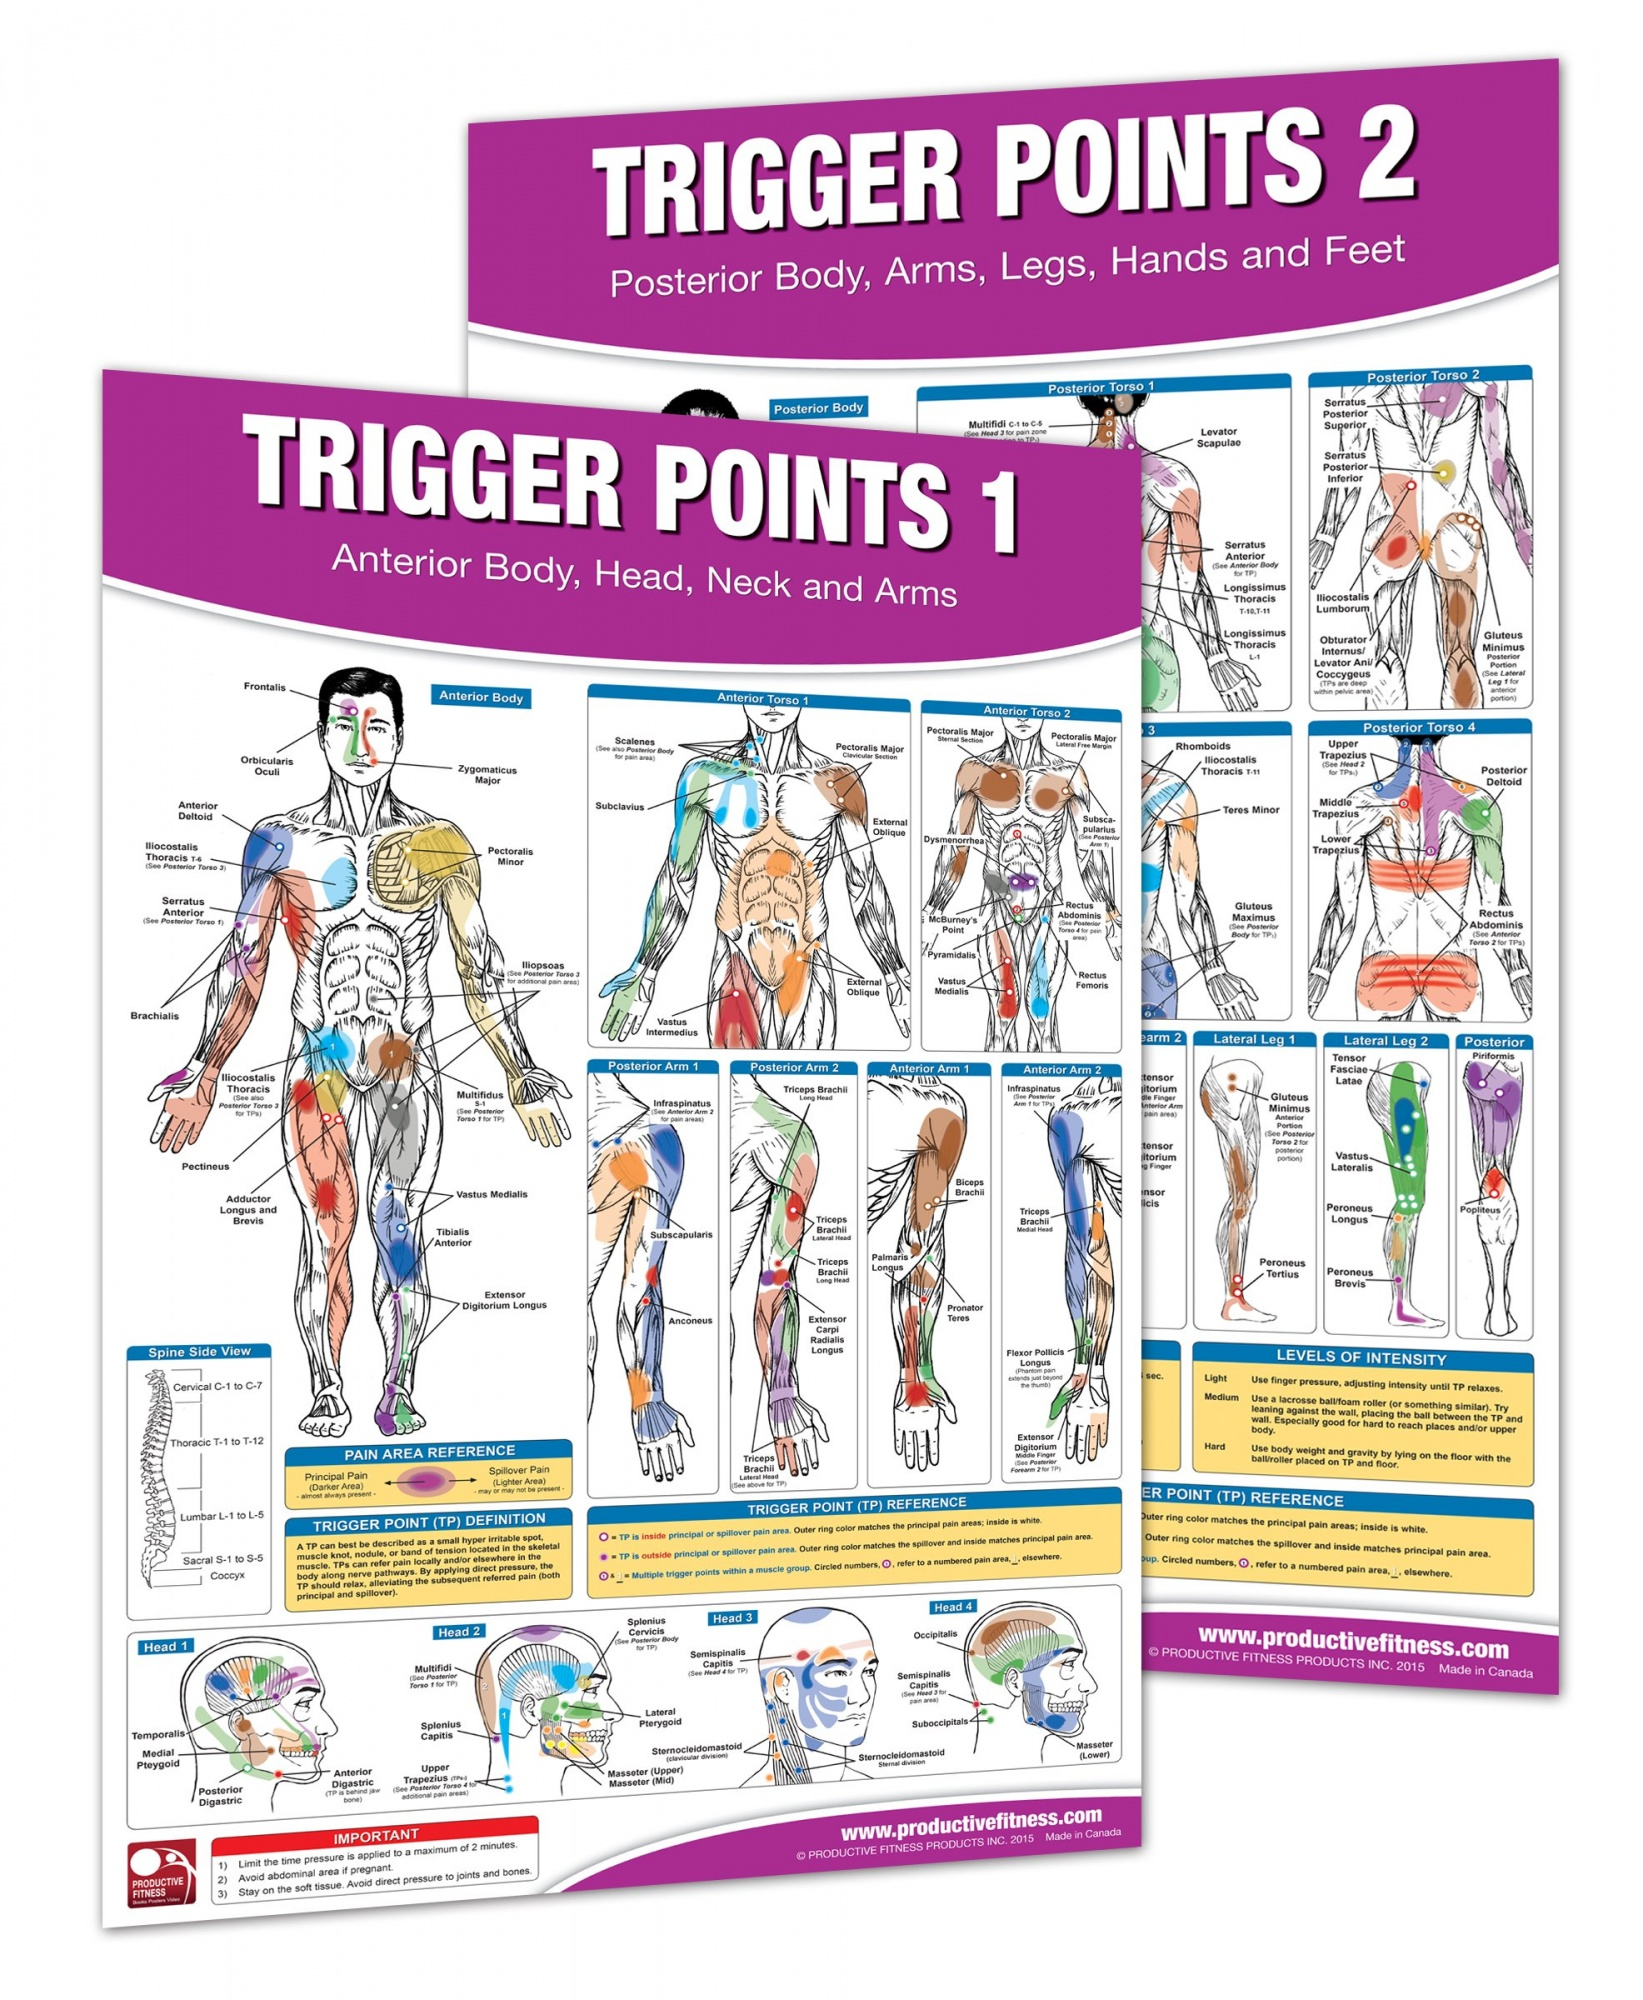 healing through trigger point therapy a guide to fibromyalgia myofascial pain and dysfunction